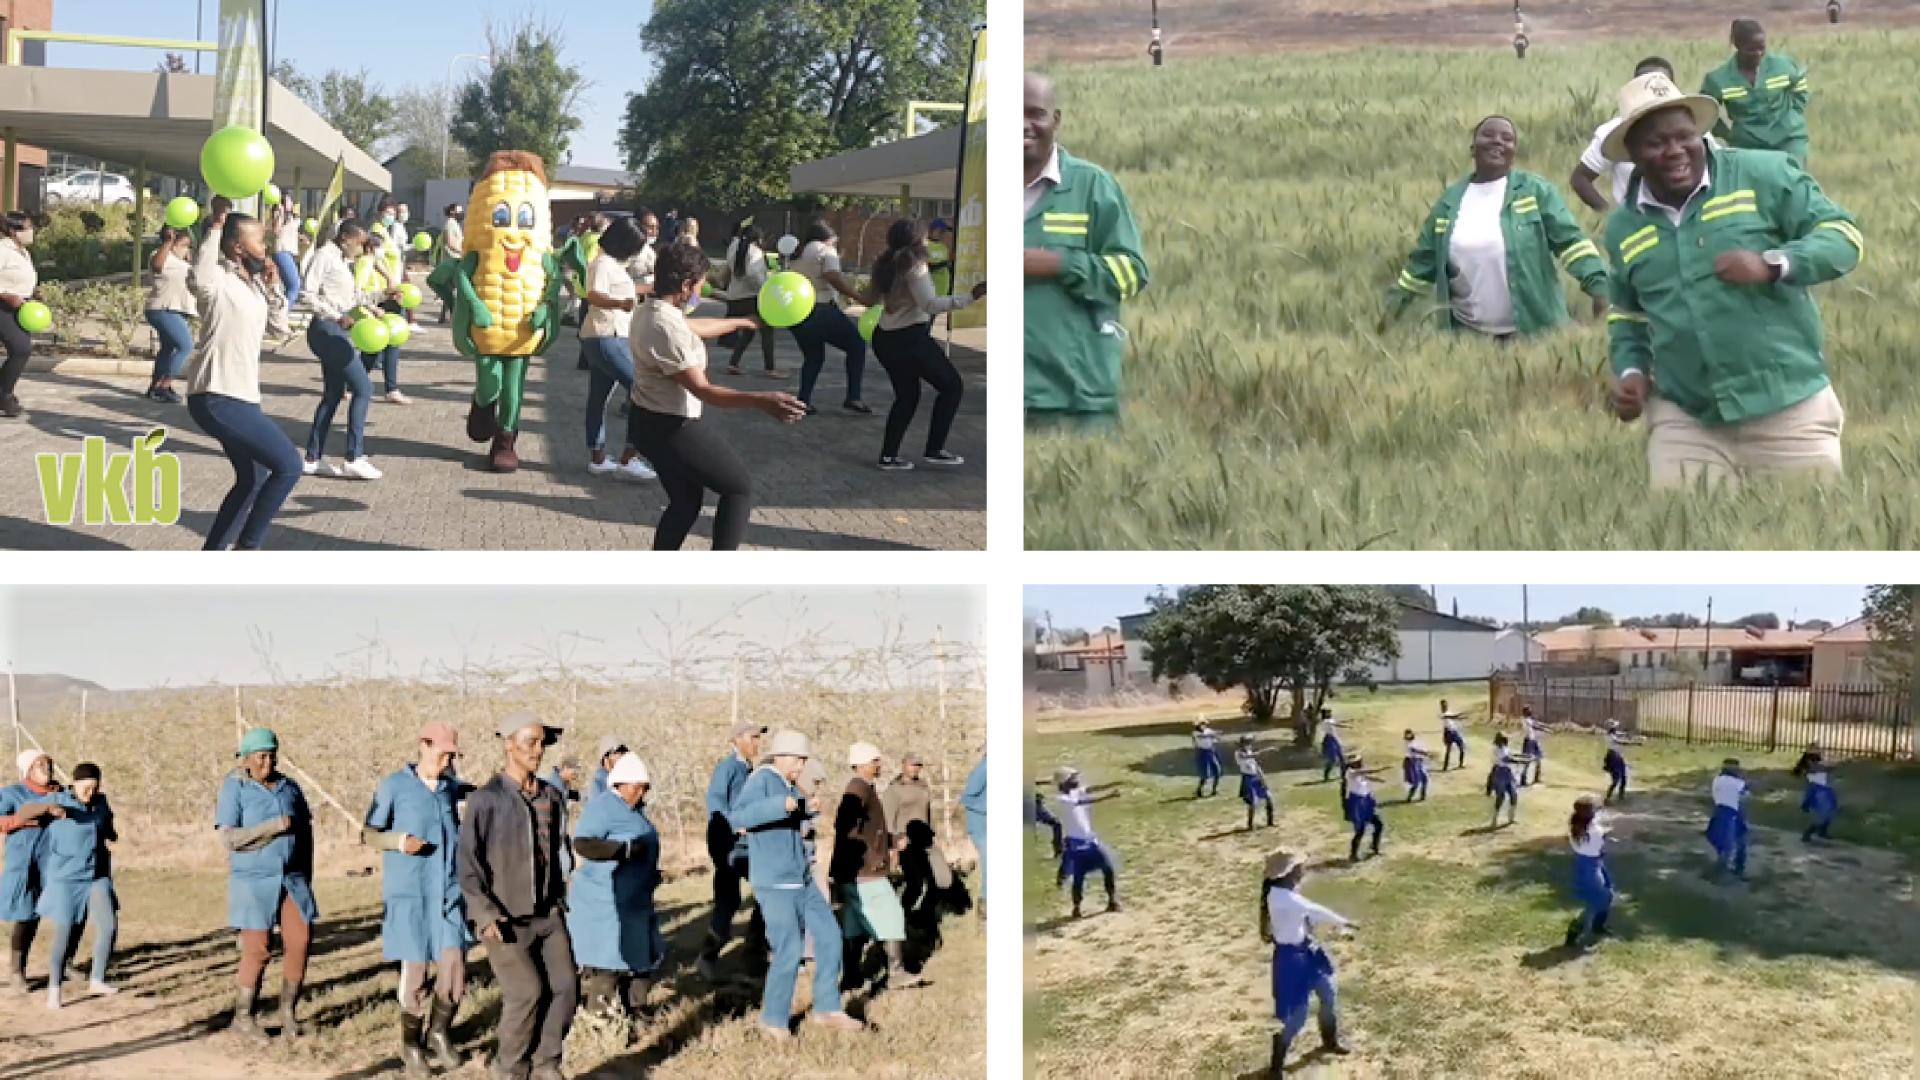 Mzansi's farmers, agriworkers and agripreneurs have heeded Pres. Cyril Ramaphosa's call to the nation to show off their dance moves to the hit song Jerusalema by Master KG. Photo: Supplied.